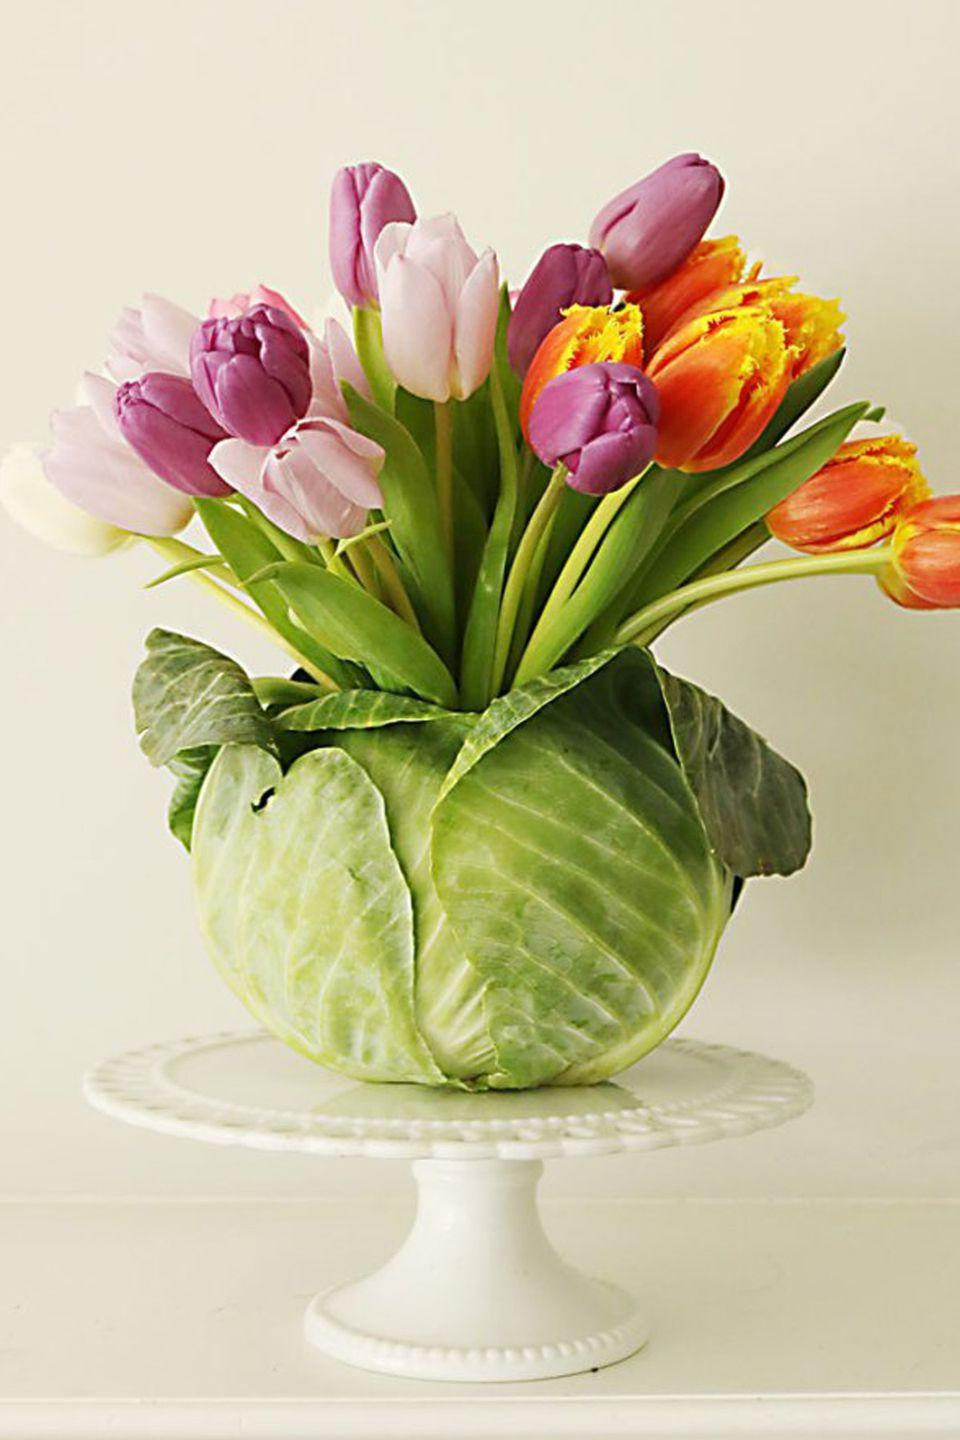 """<p>To pull off this genius vase, cut a hole in the top of a head of cabbage and put a wet foam block inside to stick stems into.</p><p><em><a href=""""http://darlingdarleen.com/2016/03/cabbage-flower-arrangement/"""" rel=""""nofollow noopener"""" target=""""_blank"""" data-ylk=""""slk:Get the tutorial at Darling Darleen »"""" class=""""link rapid-noclick-resp"""">Get the tutorial at Darling Darleen »</a></em></p><p><strong><em>Ceramic Cabbage Vase, $65</em></strong> <a class=""""link rapid-noclick-resp"""" href=""""https://go.redirectingat.com?id=74968X1596630&url=https%3A%2F%2Fwww.etsy.com%2Flisting%2F906807917%2Fvintage-h-hd-cabbage-canister-with%3Fref%3Dlandingpage_similar_listing_top-5%26pro%3D1%26frs%3D1&sref=https%3A%2F%2Fwww.housebeautiful.com%2Fentertaining%2Fflower-arrangements%2Fg19409803%2Feaster-flower-arrangements%2F"""" rel=""""nofollow noopener"""" target=""""_blank"""" data-ylk=""""slk:BUY NOW"""">BUY NOW</a></p>"""